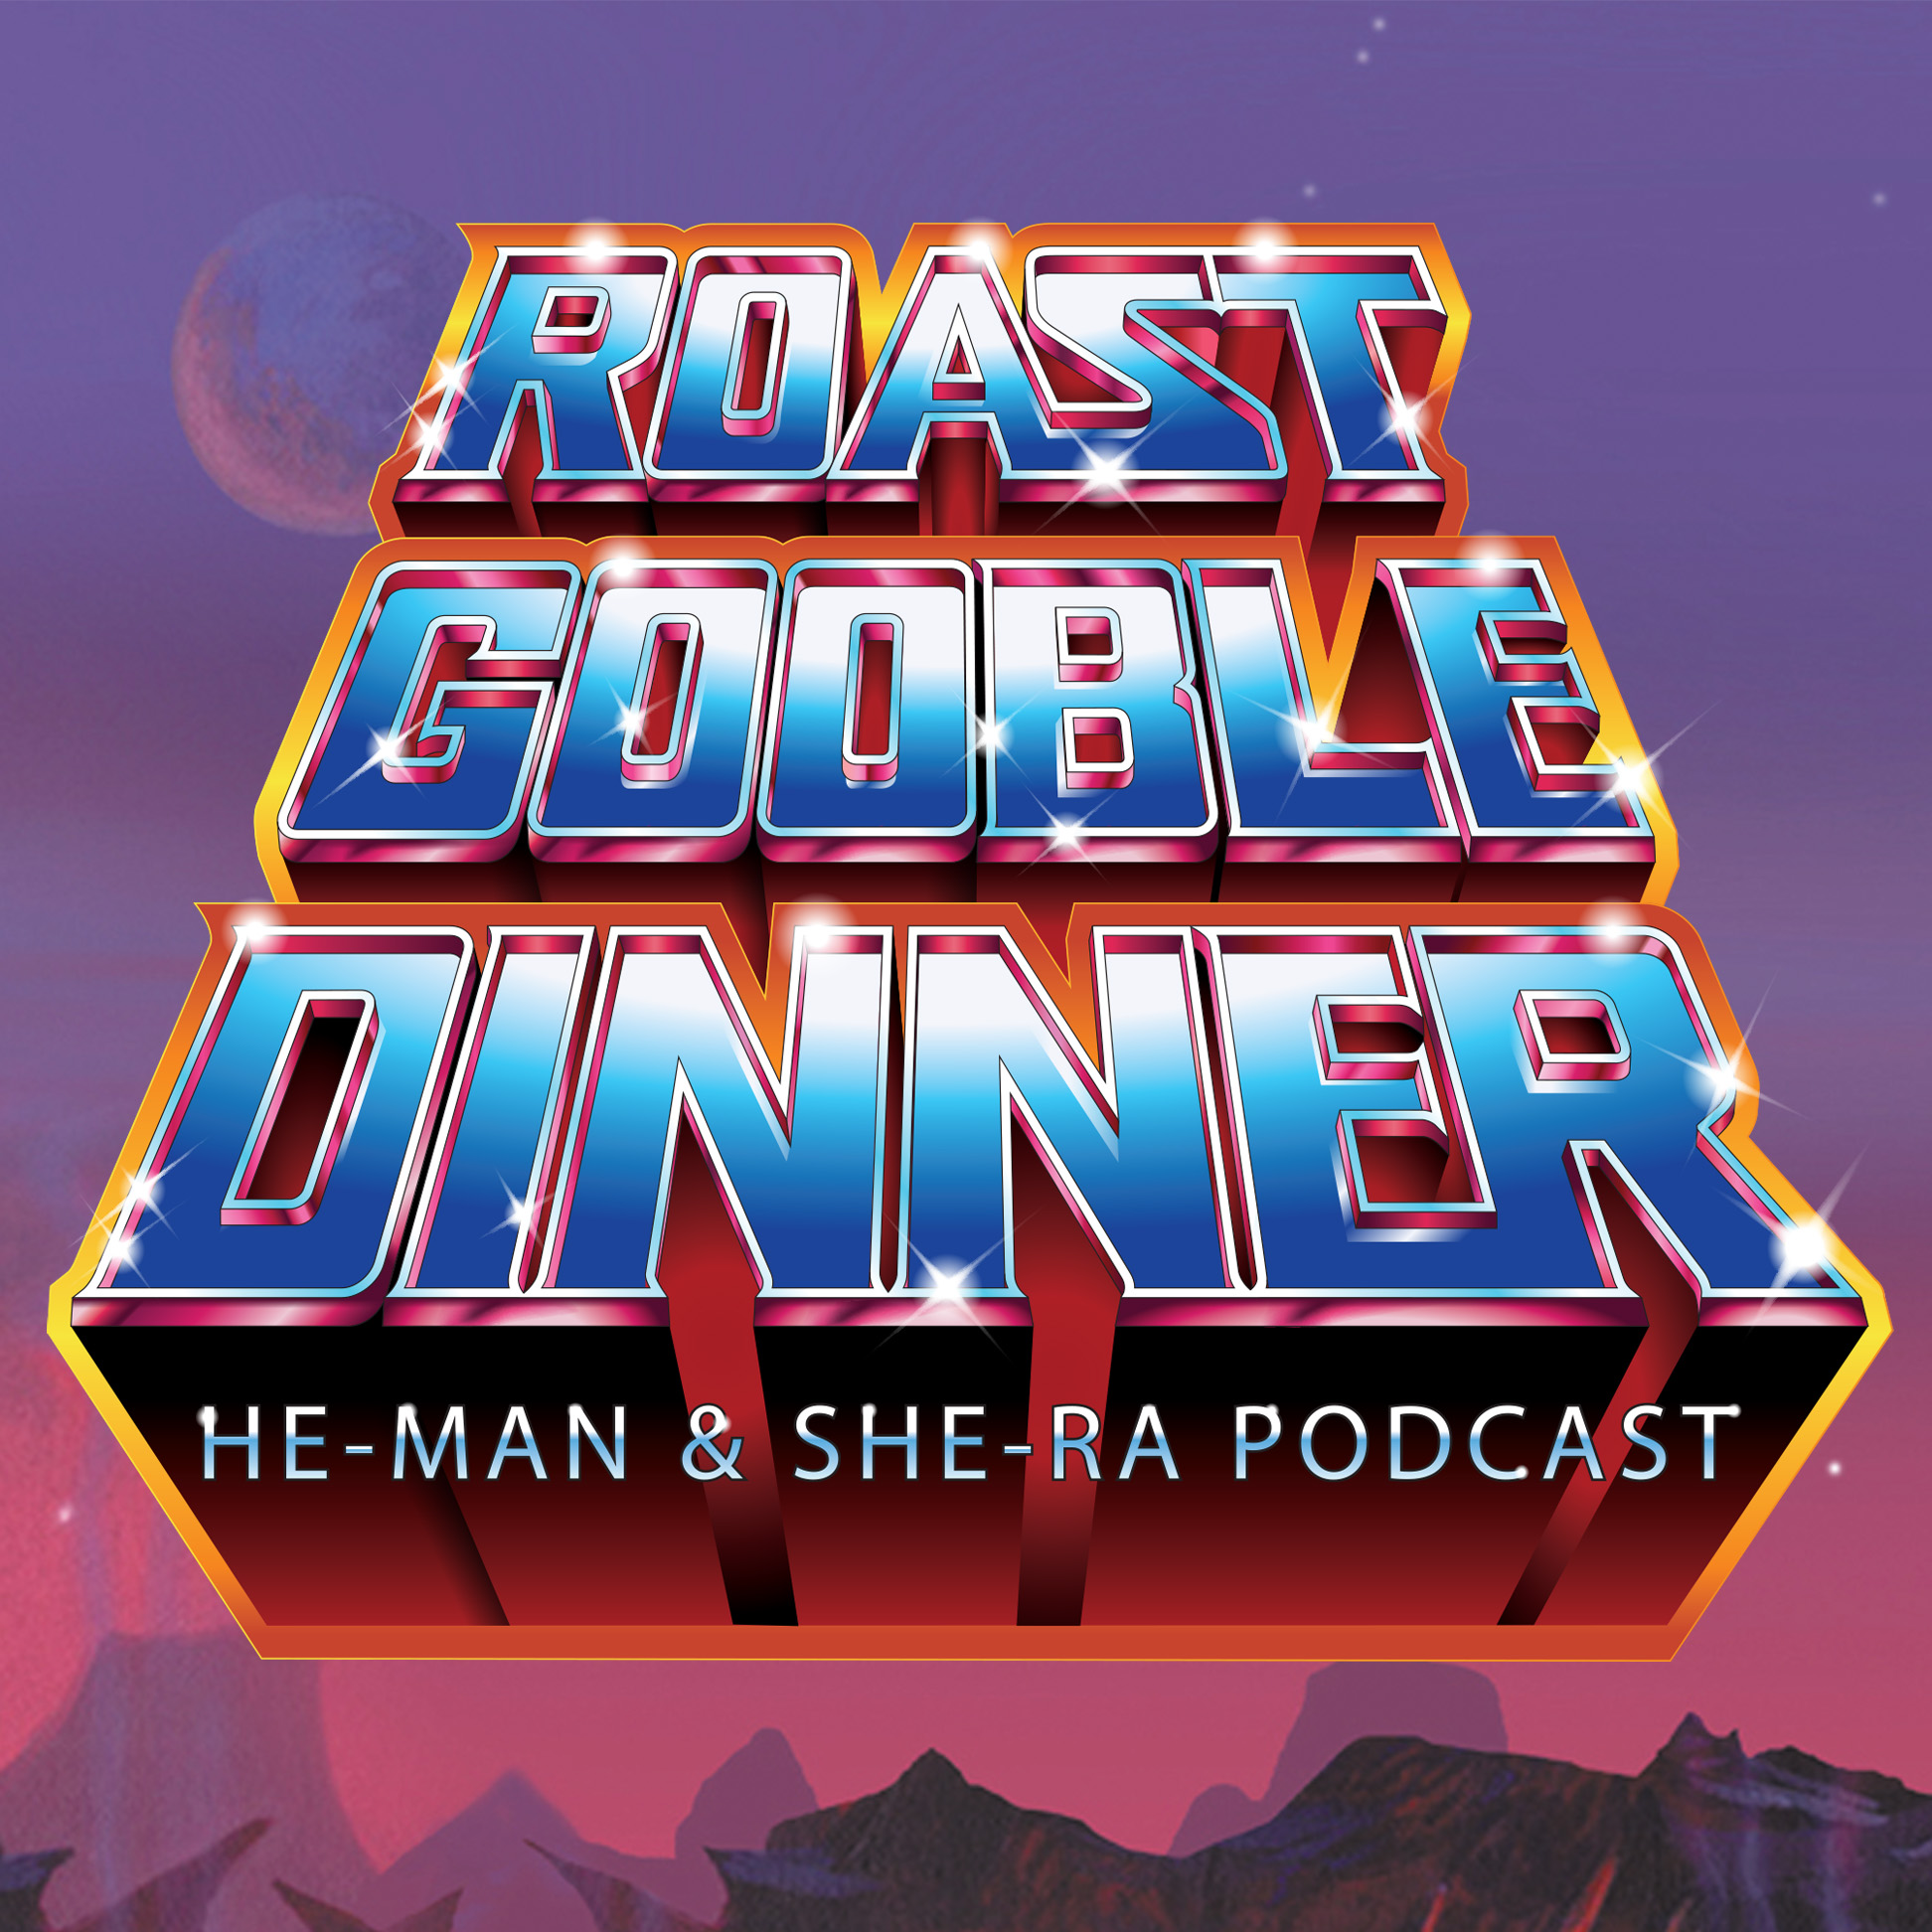 Episode 133 - He-Man.org's Roast Gooble Dinner